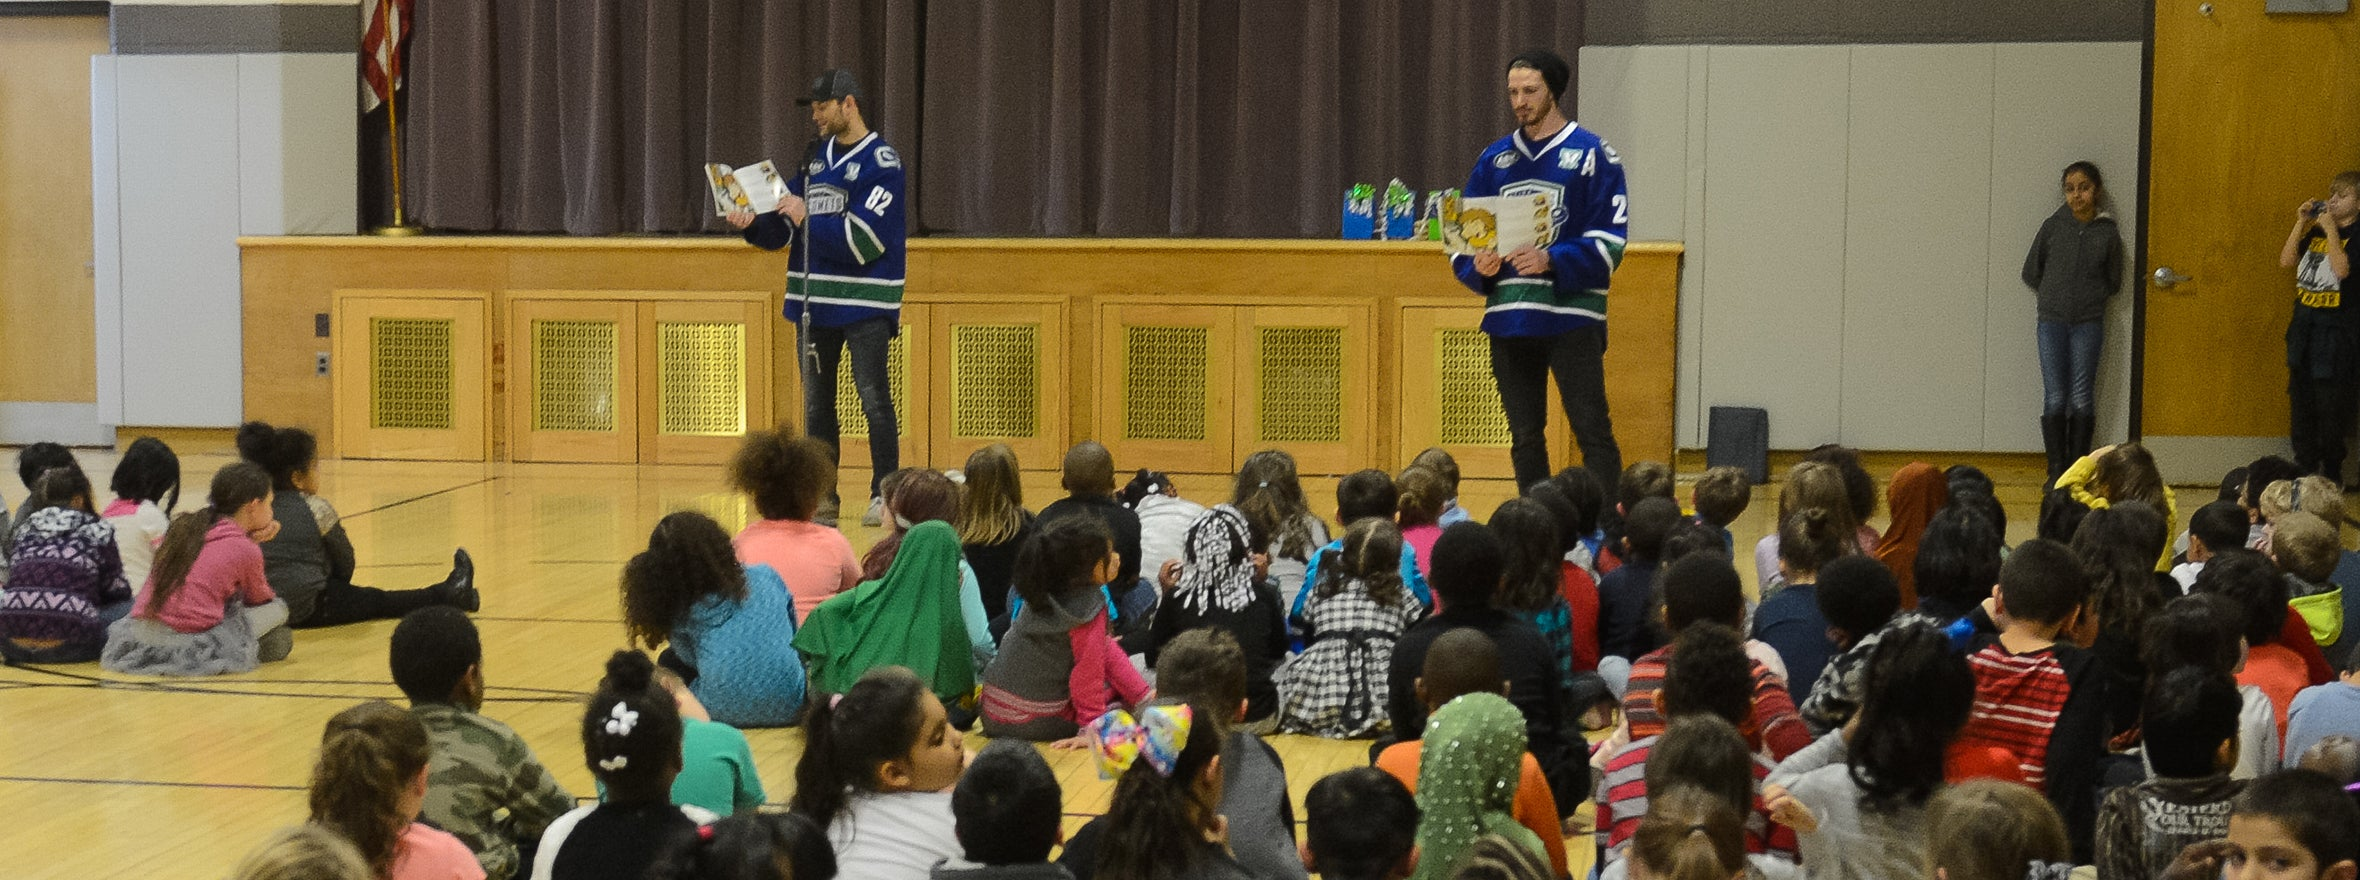 COMETS KICK OFF 'SKATE INTO READING' INITIATIVE